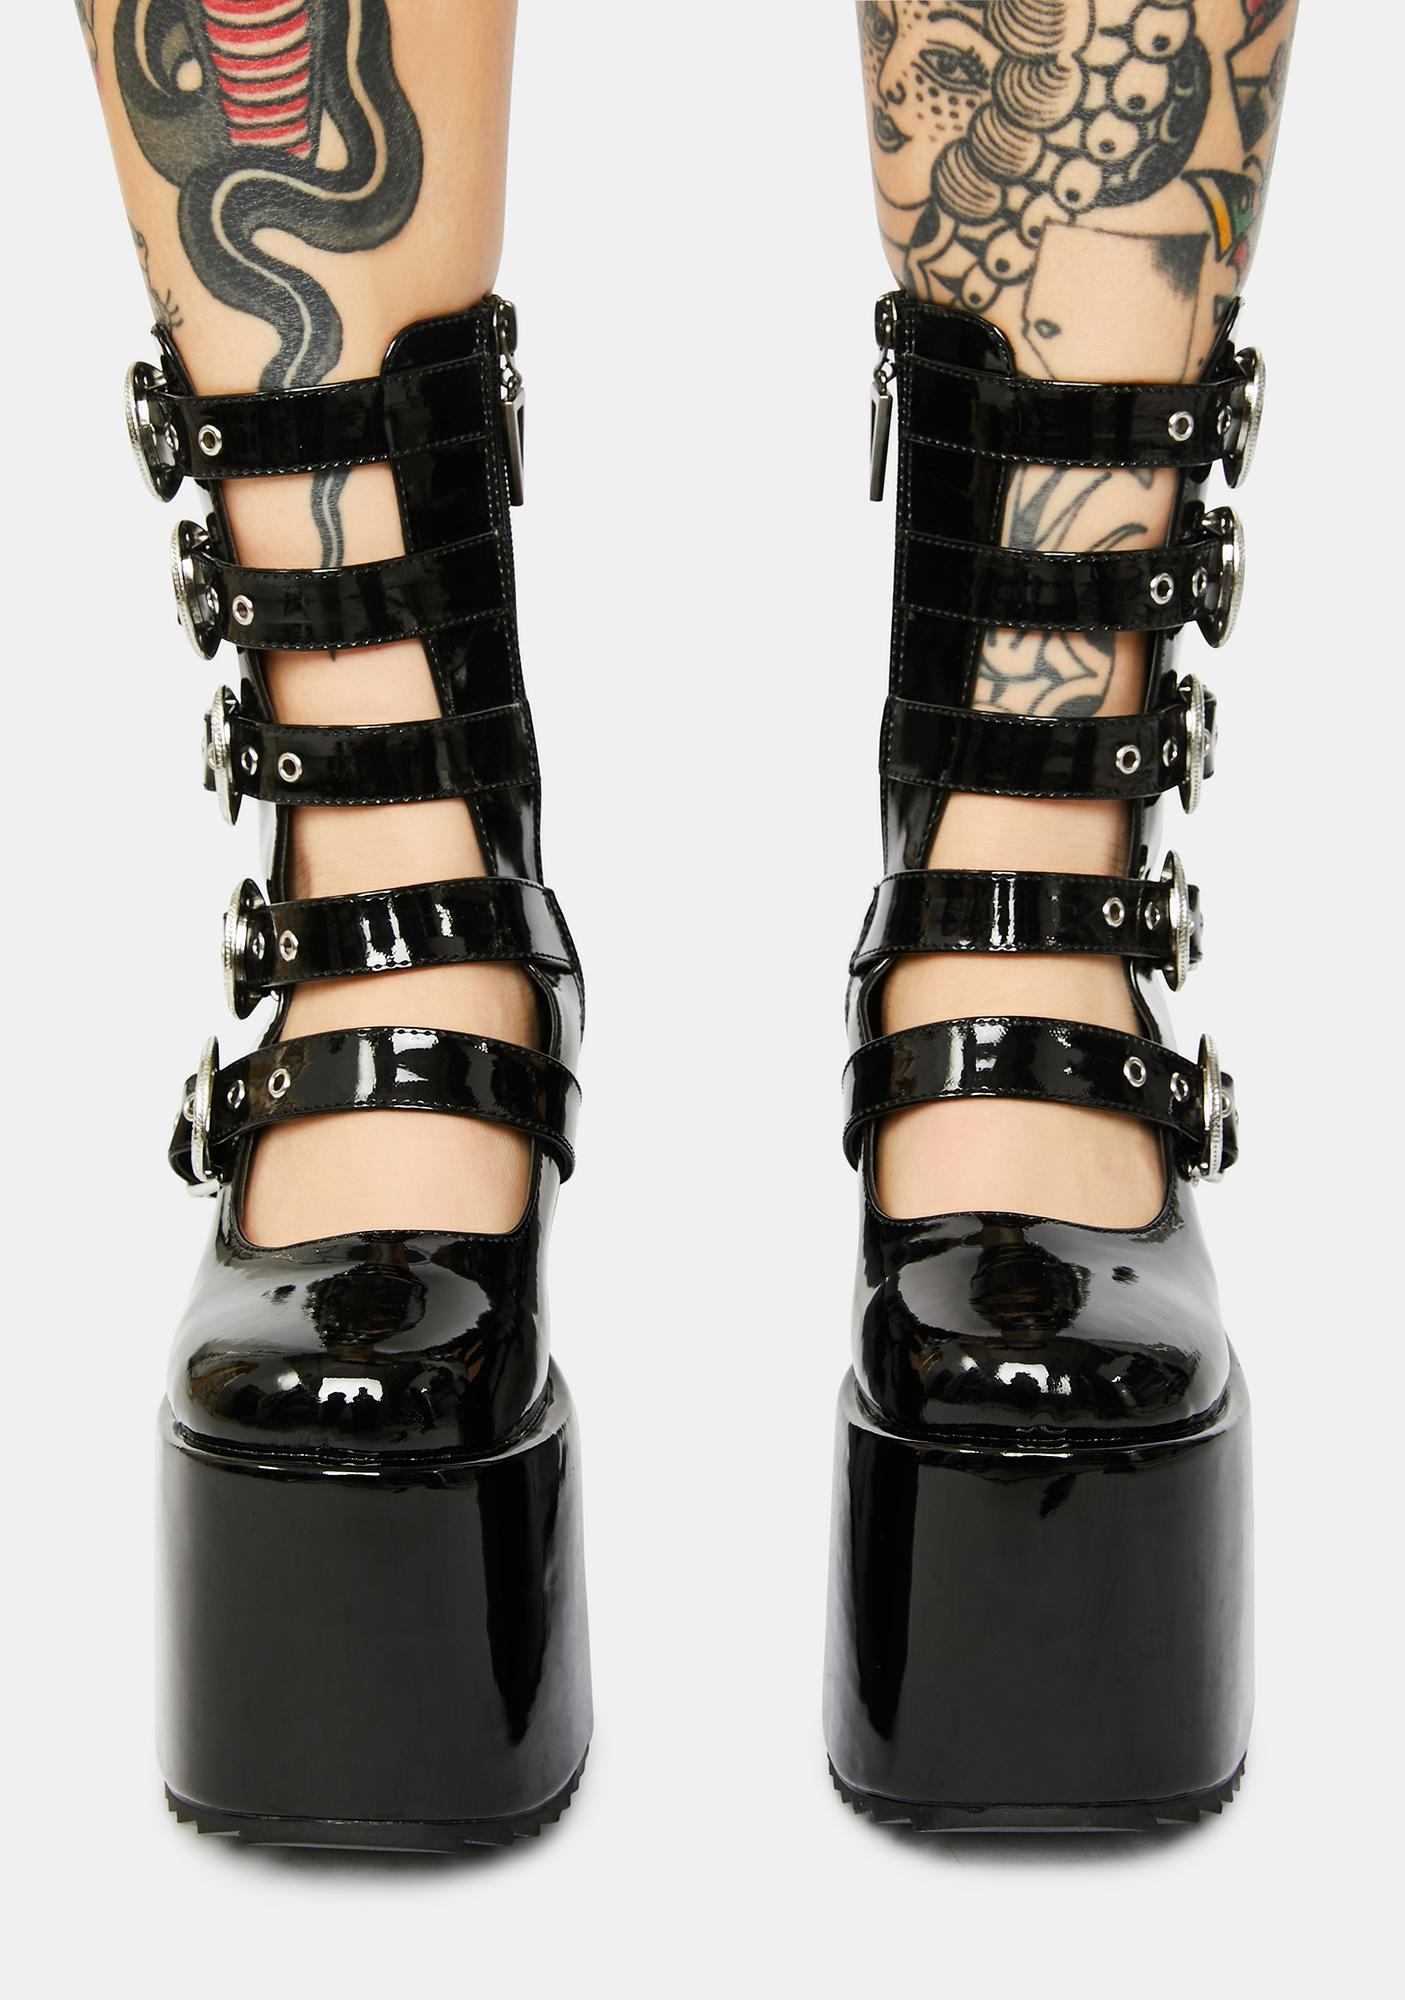 Wicked Patent High N Mighty Buckle Strap Platforms